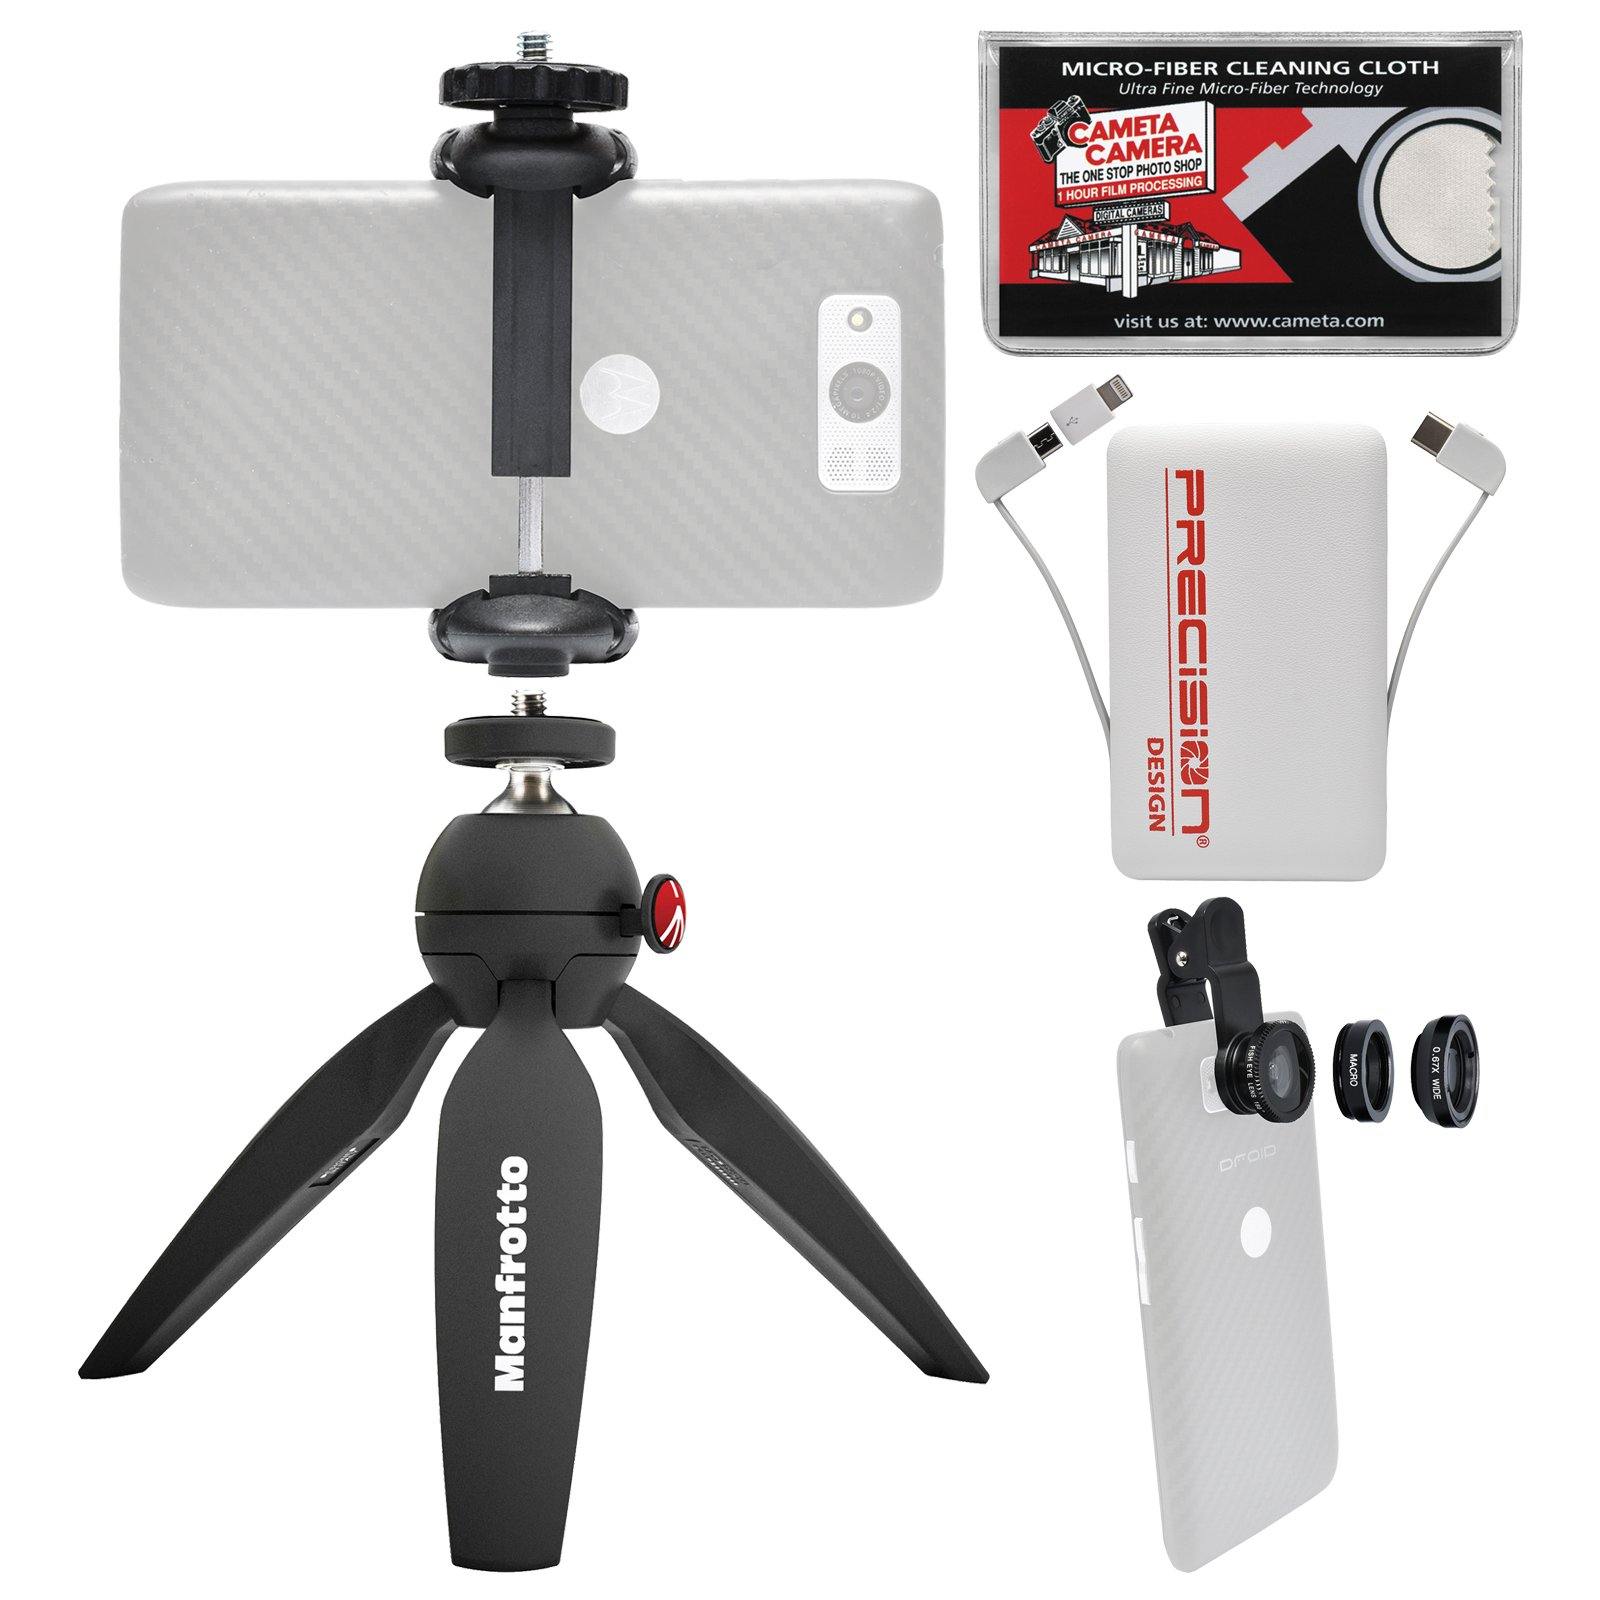 Manfrotto PIXI Mini Tripod (Black) with TwistGrip Clamp + Fisheye, Macro & Wide-Angle Lens Set + Power Bank Kit All iPhone & Android Smartphones by Manfrotto